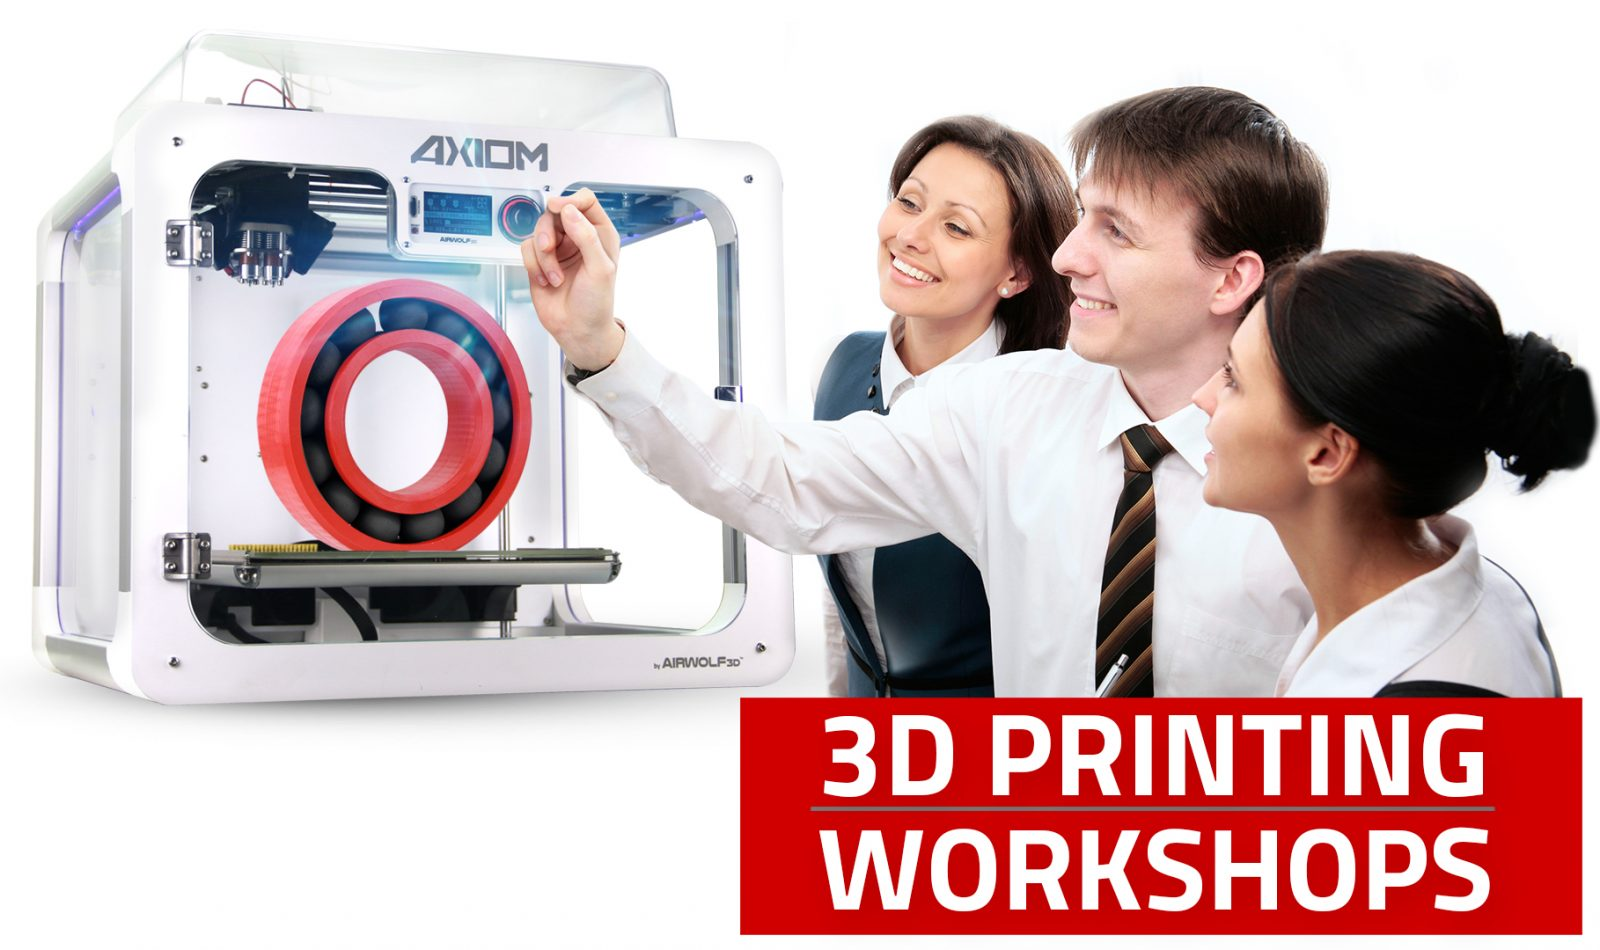 Workshops and 3D Printing Classes